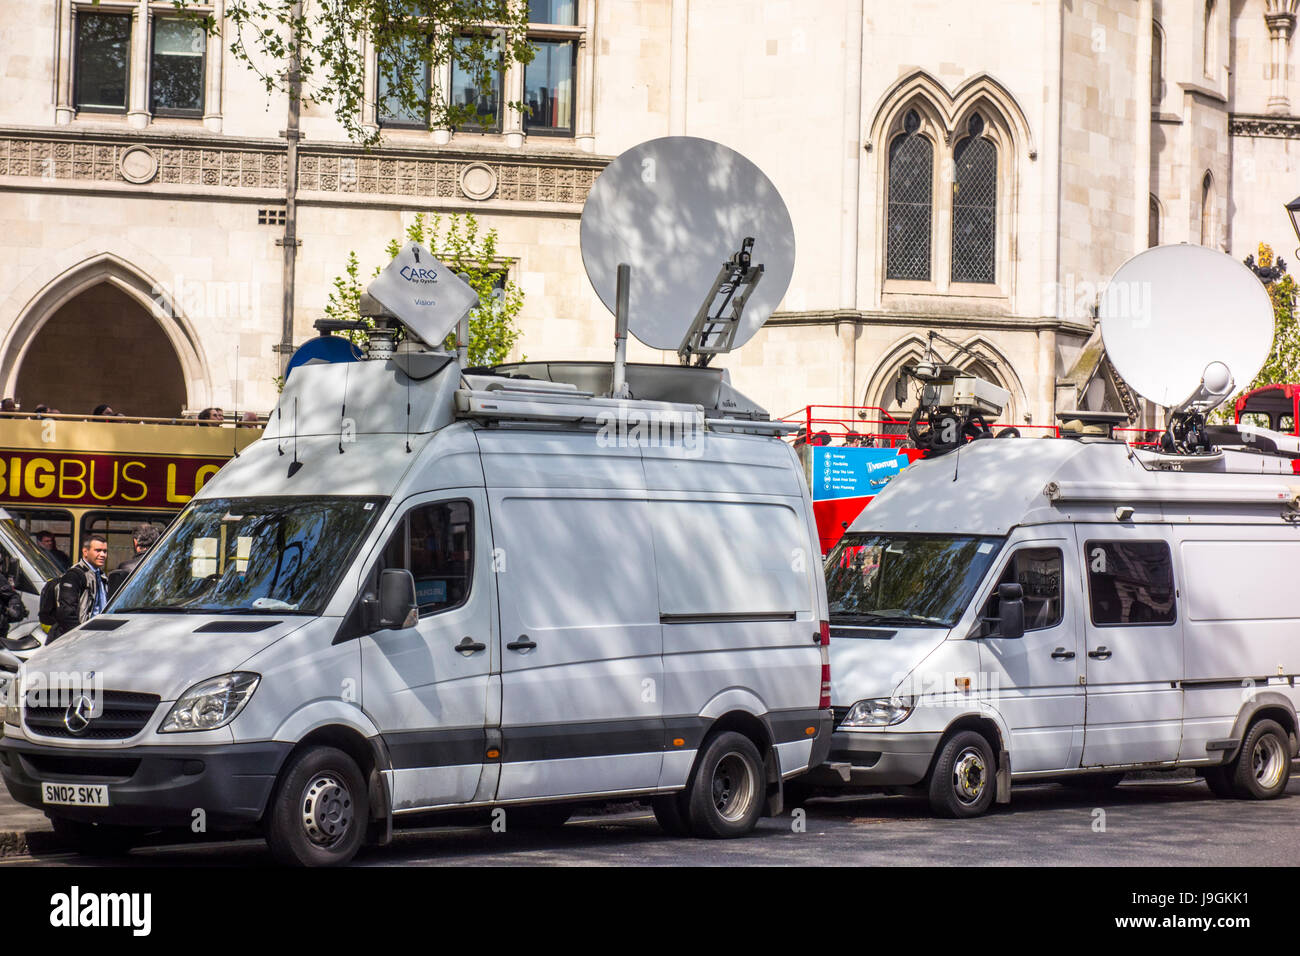 Television (TV) outside broadcast (OB) vans outside Royal Courts of Justice, London, UK - Stock Image